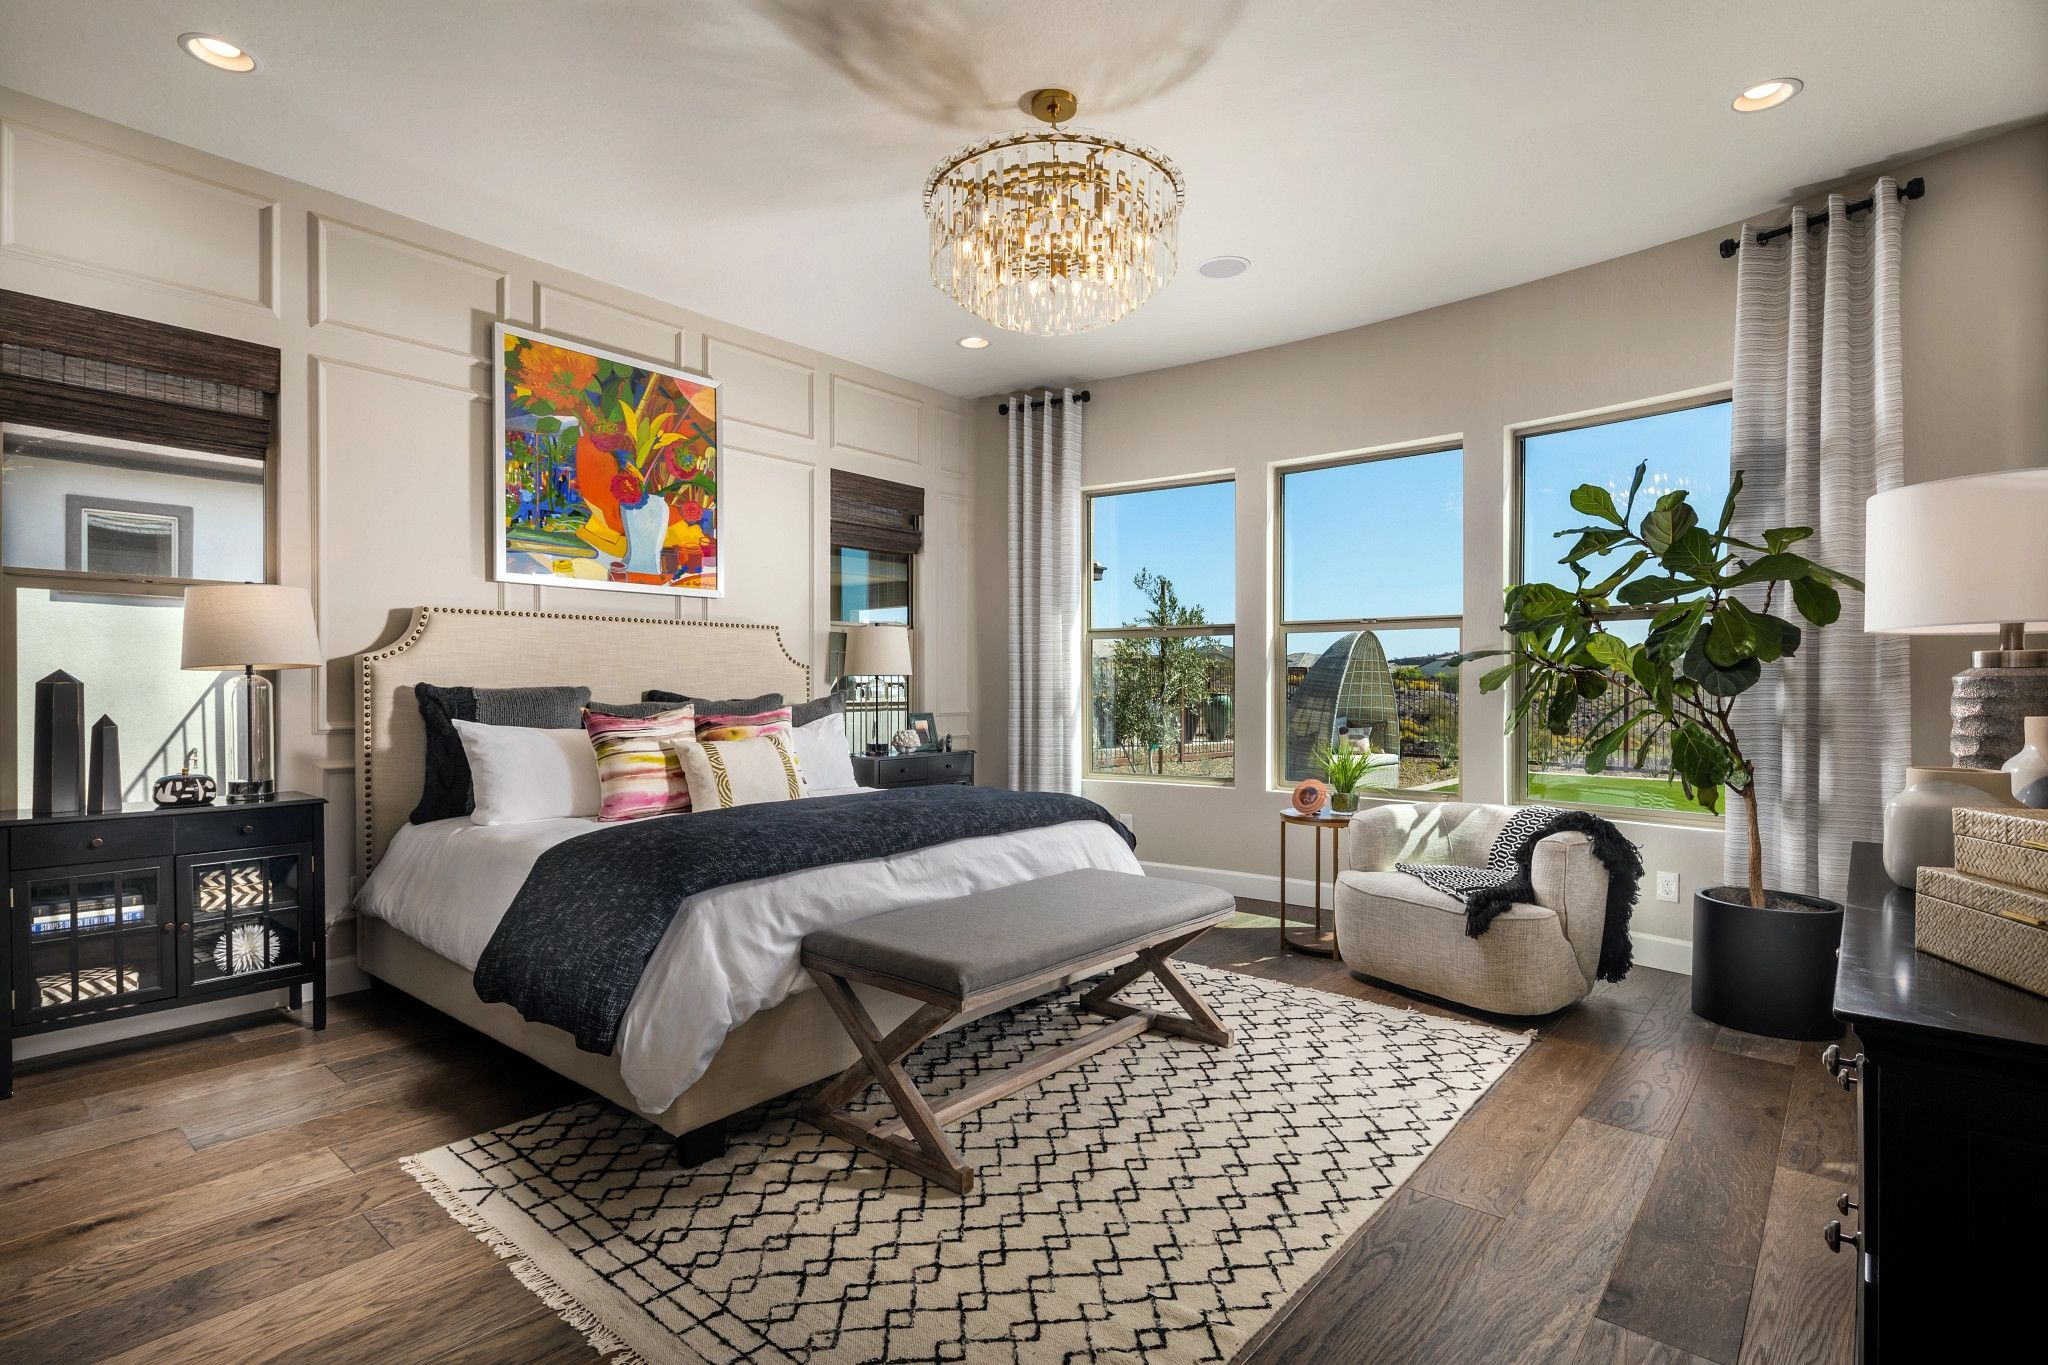 Bedroom featured in the Cordoba By Shea Homes - Trilogy in Phoenix-Mesa, AZ